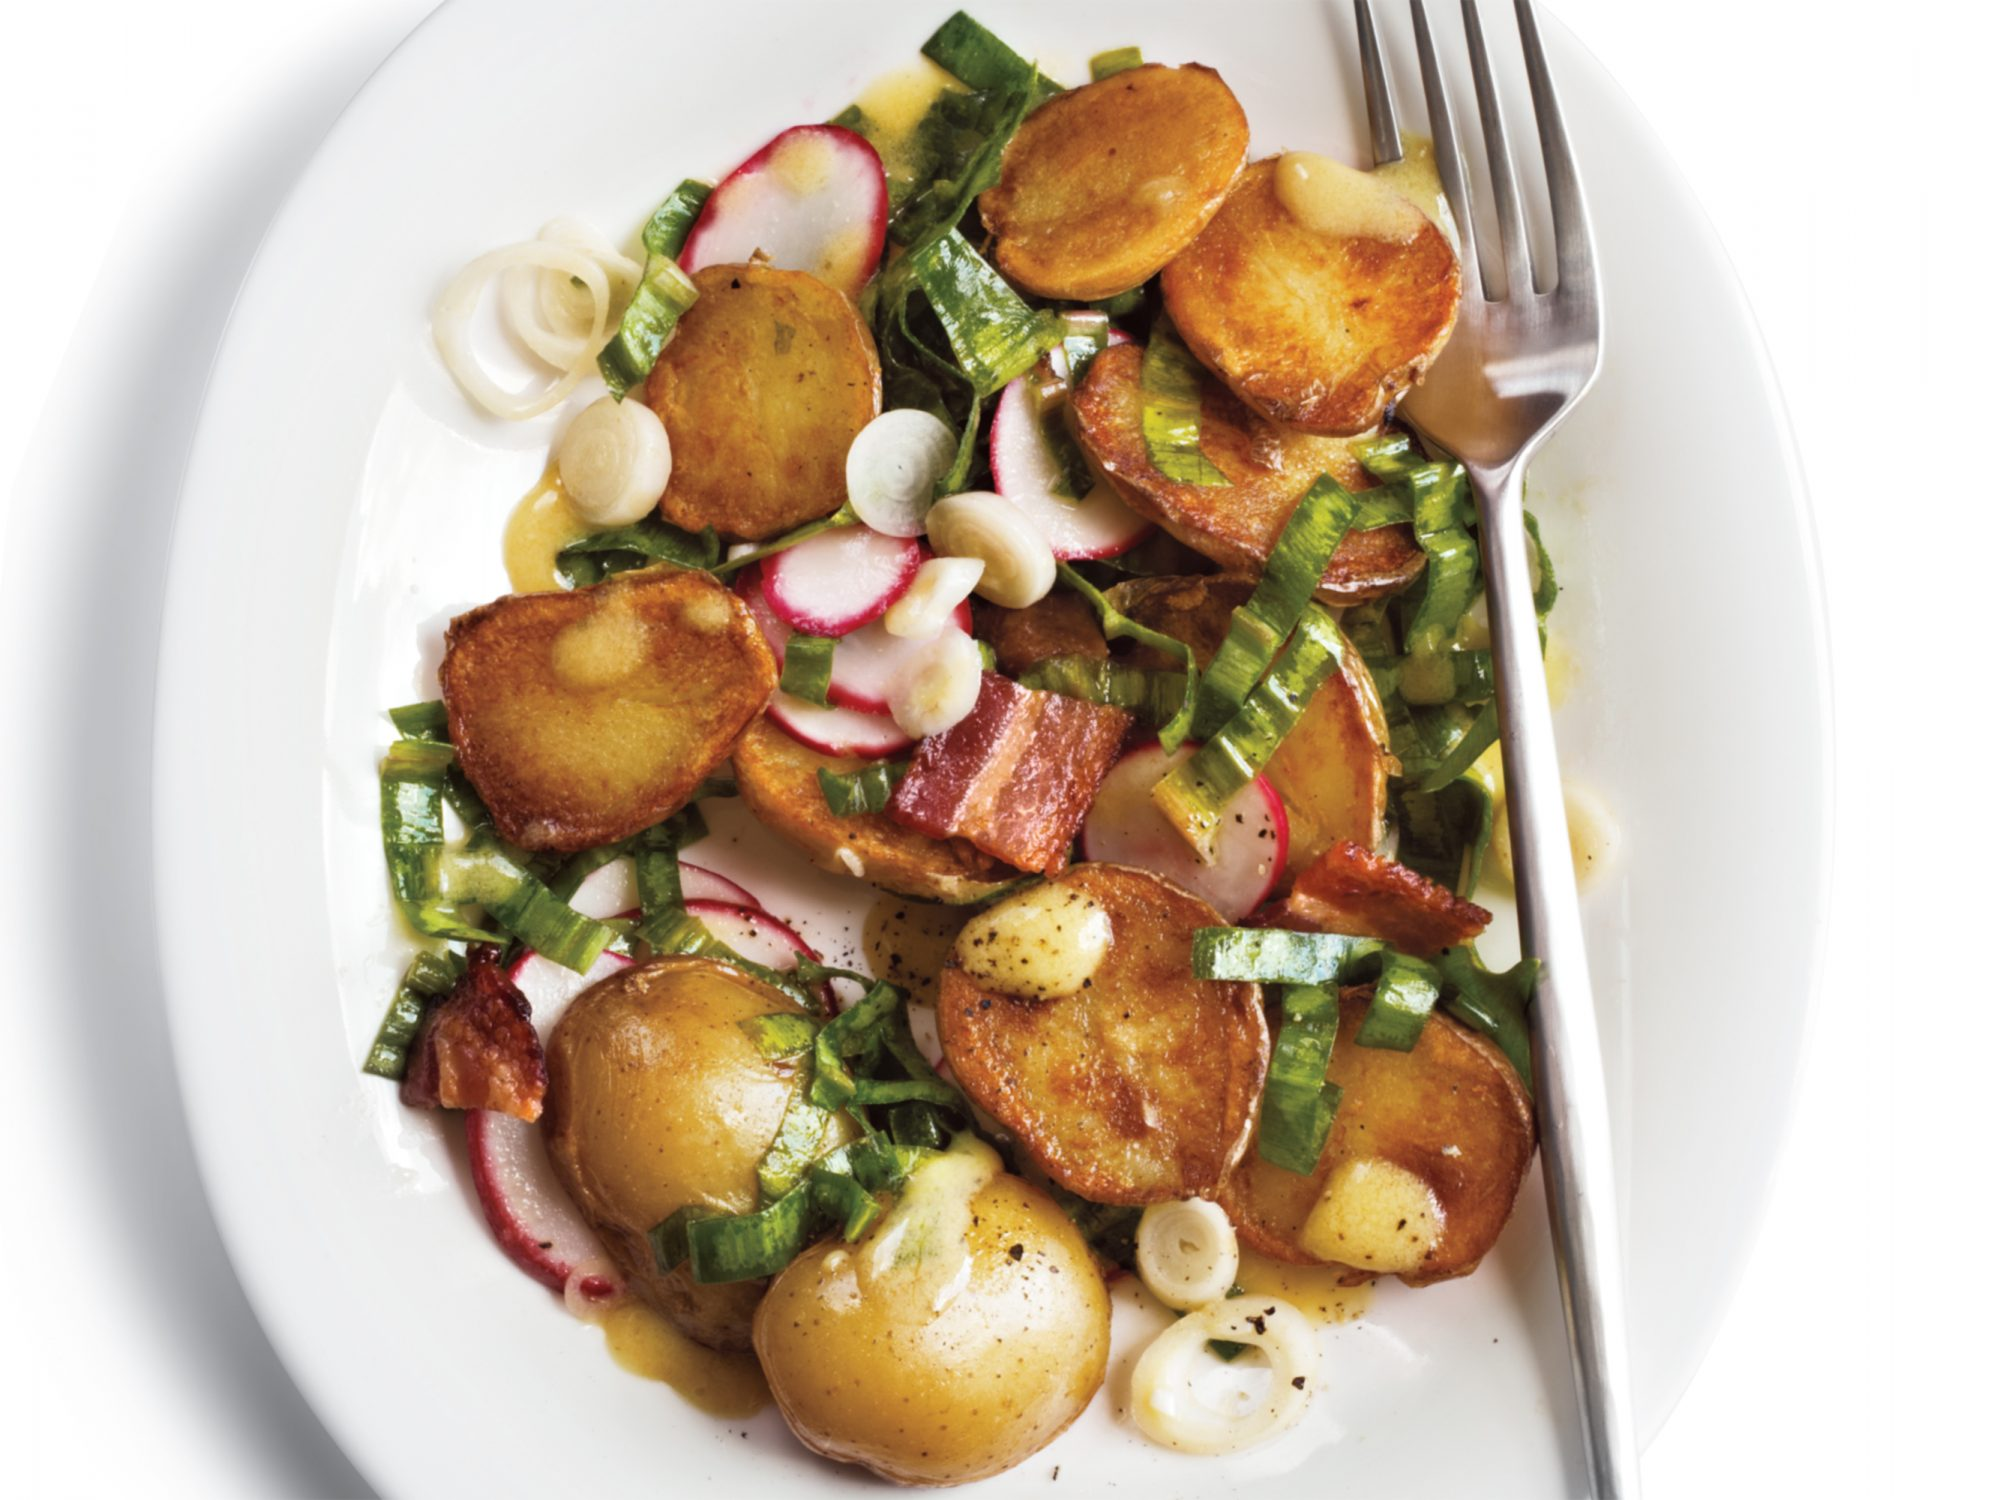 Warm Potato Salad with Ramps and Bacon